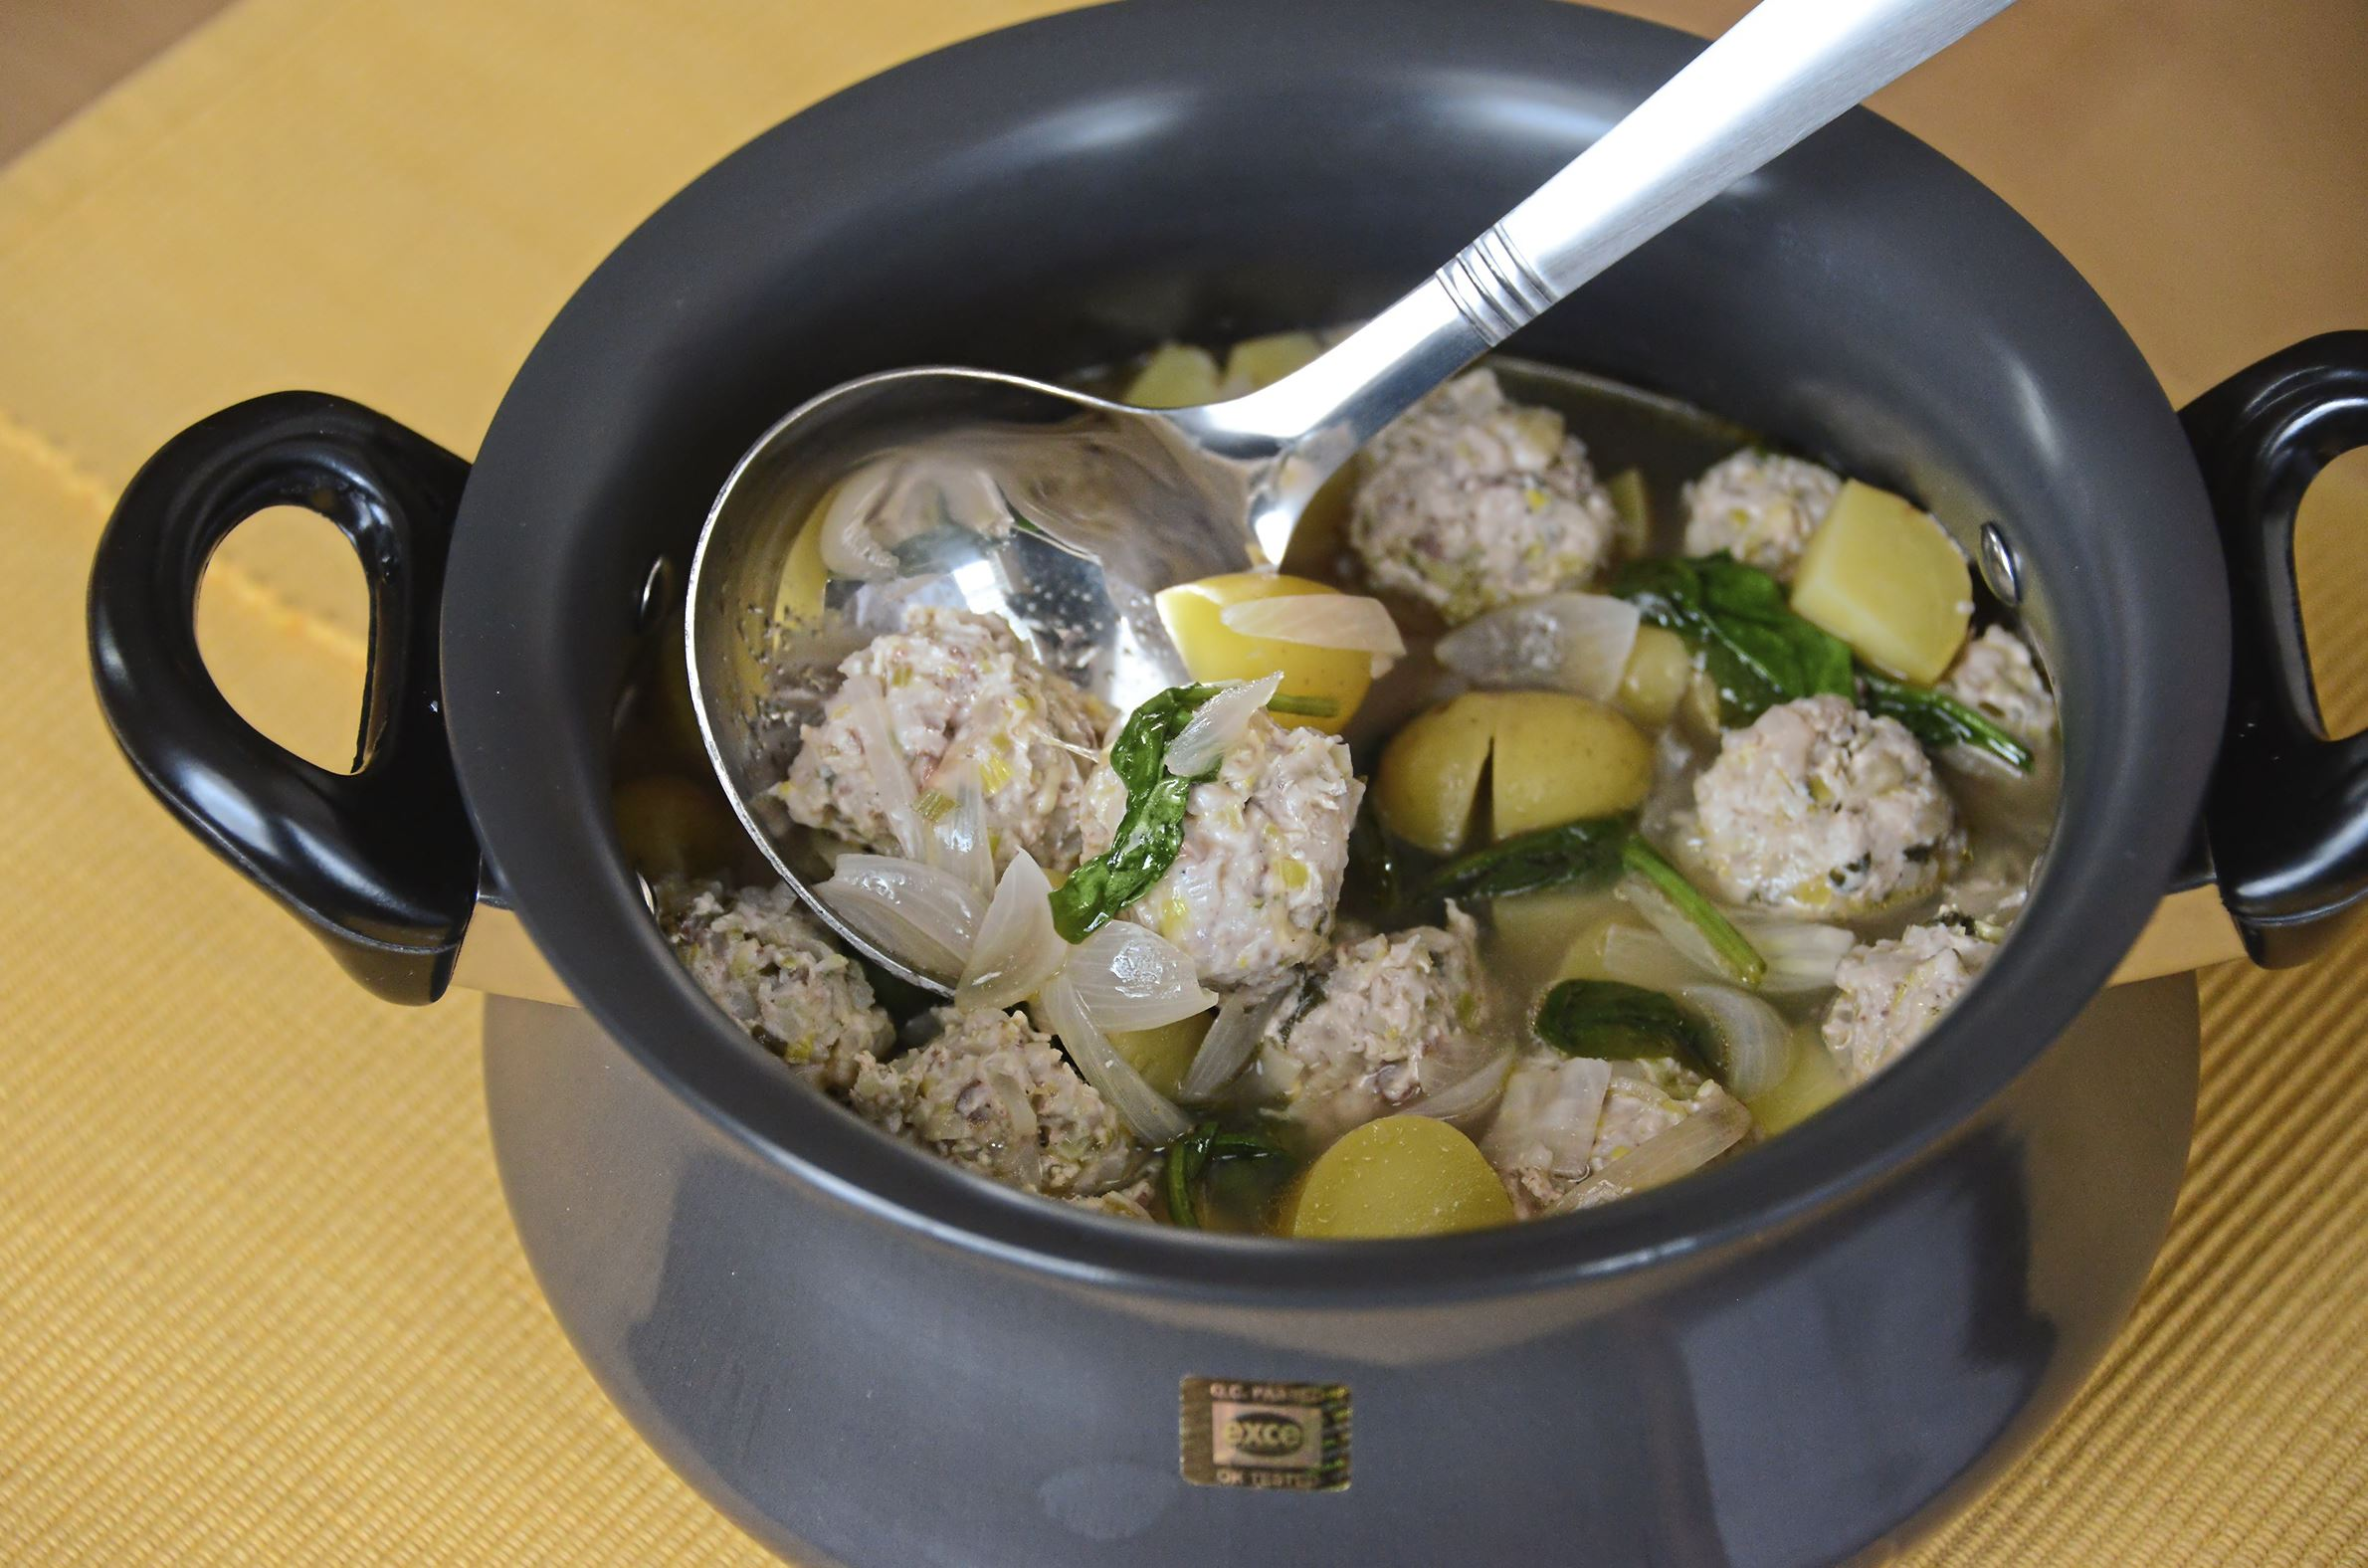 20180105lf-Soup04-5 Chicken Meatballs in Lemon Broth. Diced leeks and fennel are combined with ground chicken to make the meatballs, which are poached in a lemony broth in this soup.